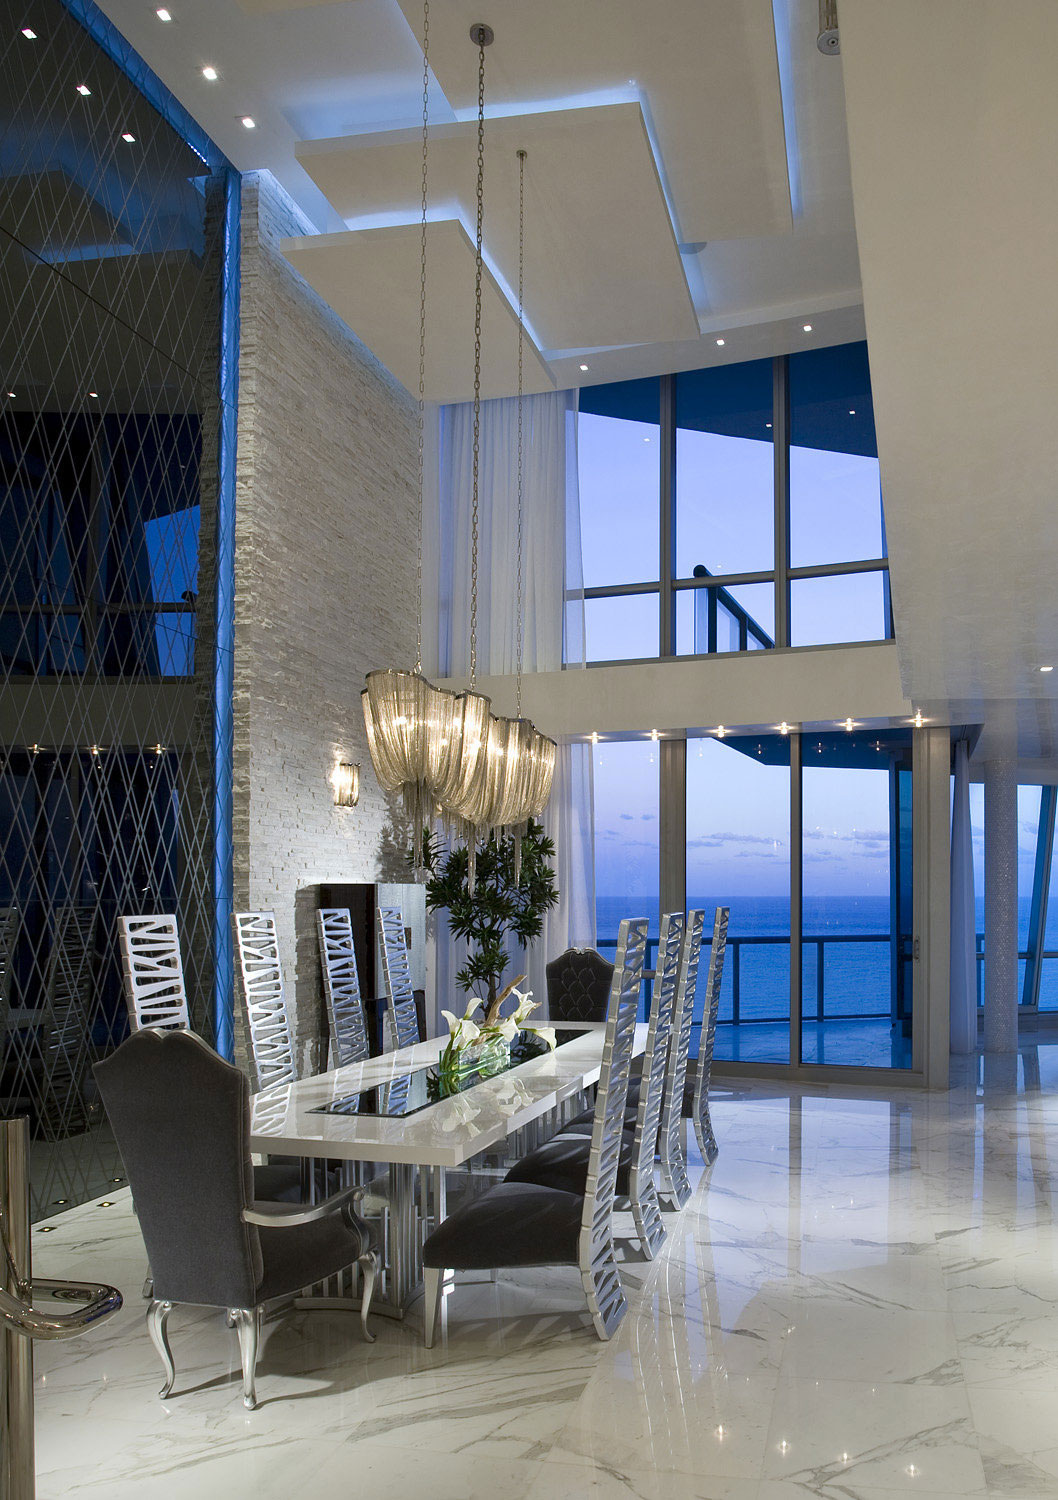 Elegant-ocean-penthouse-with-lots-of-hanging-lights-10 Elegant-ocean-penthouse with lots of hanging lights